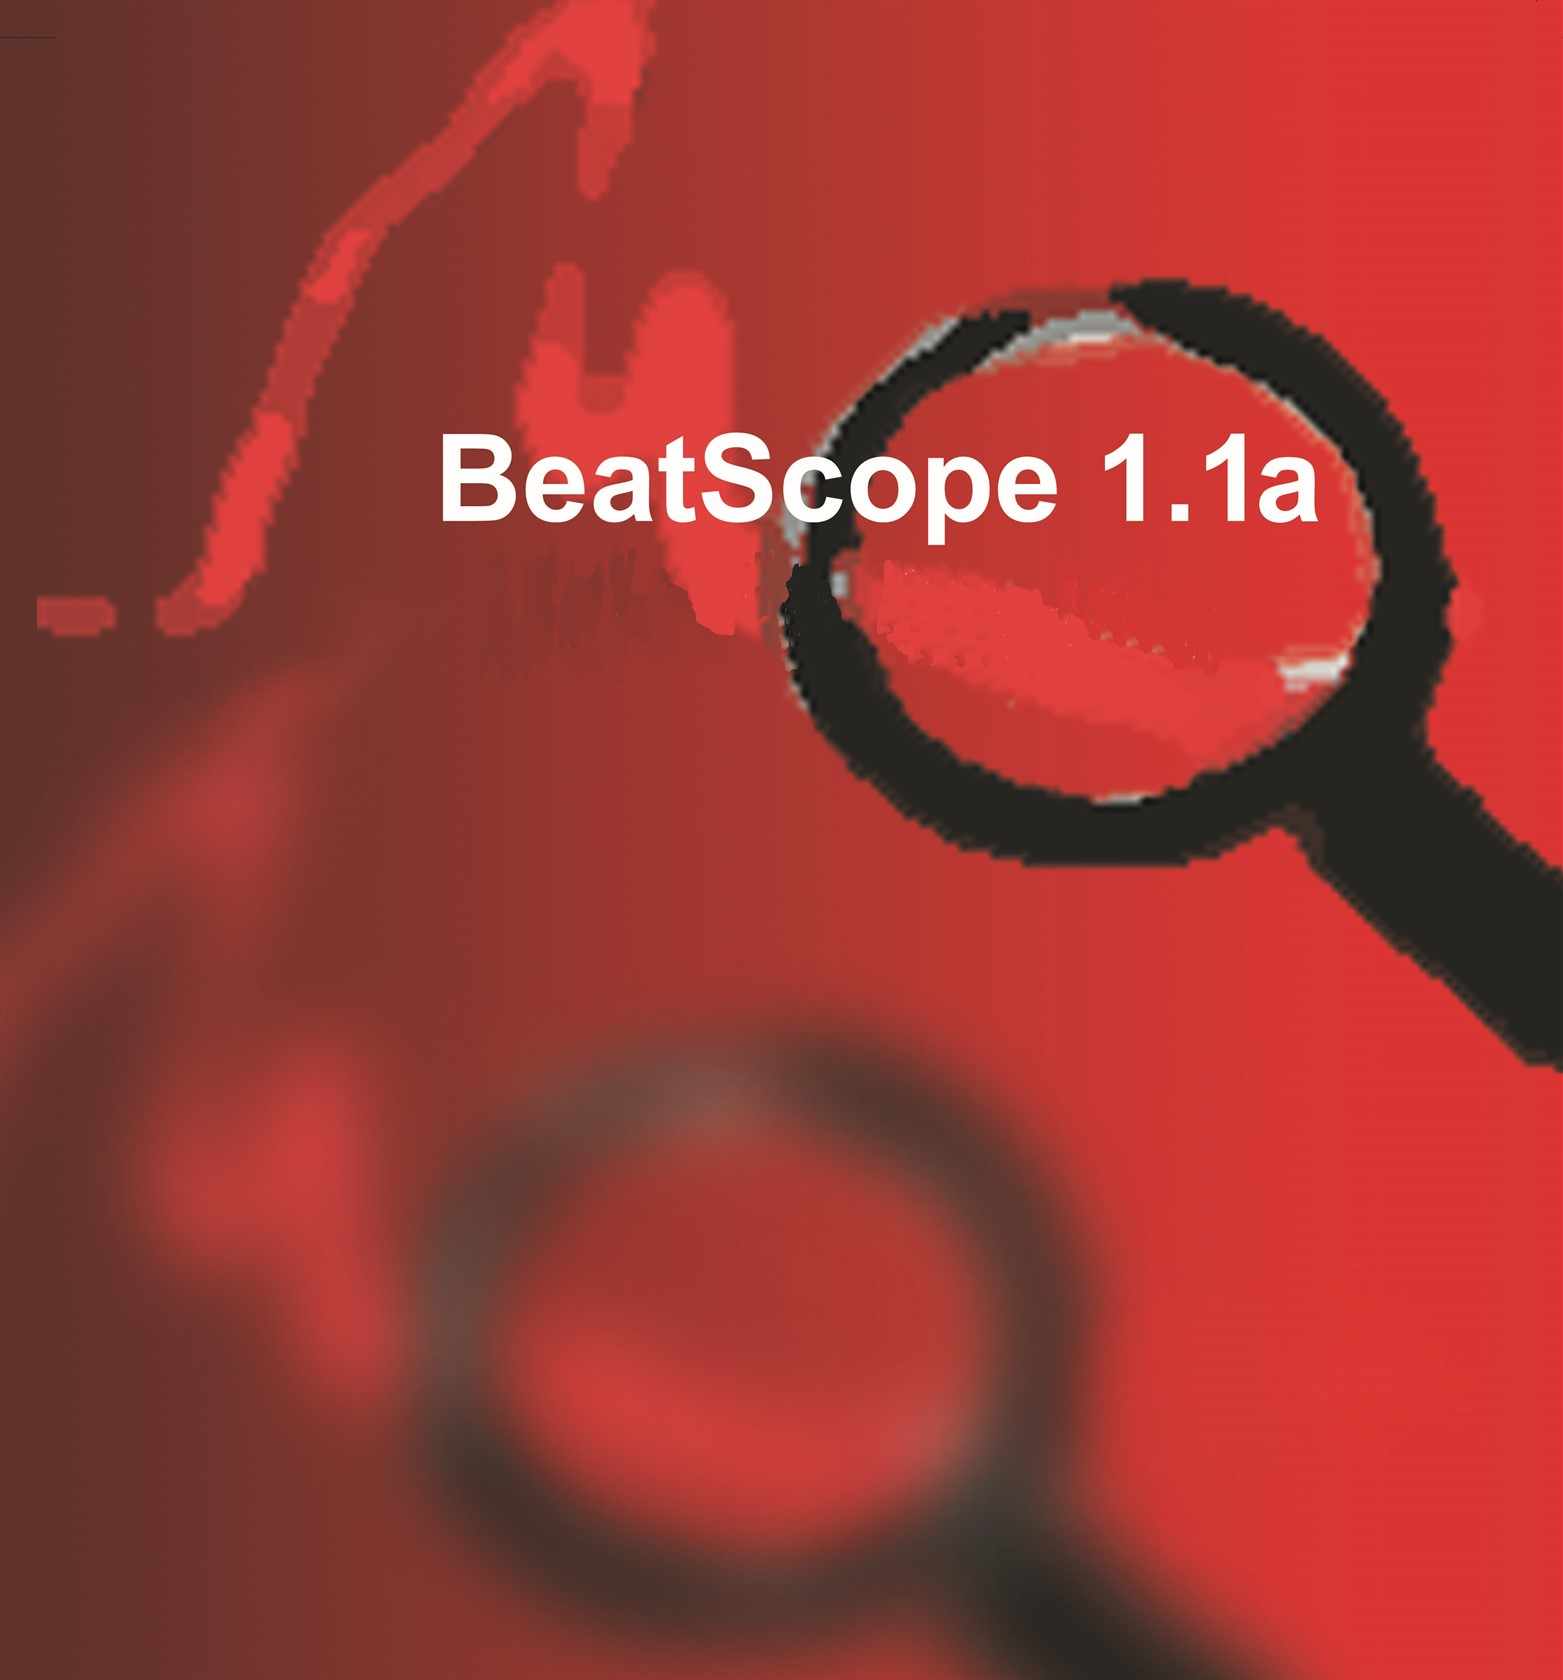 BeatScope 1.1a Research Software